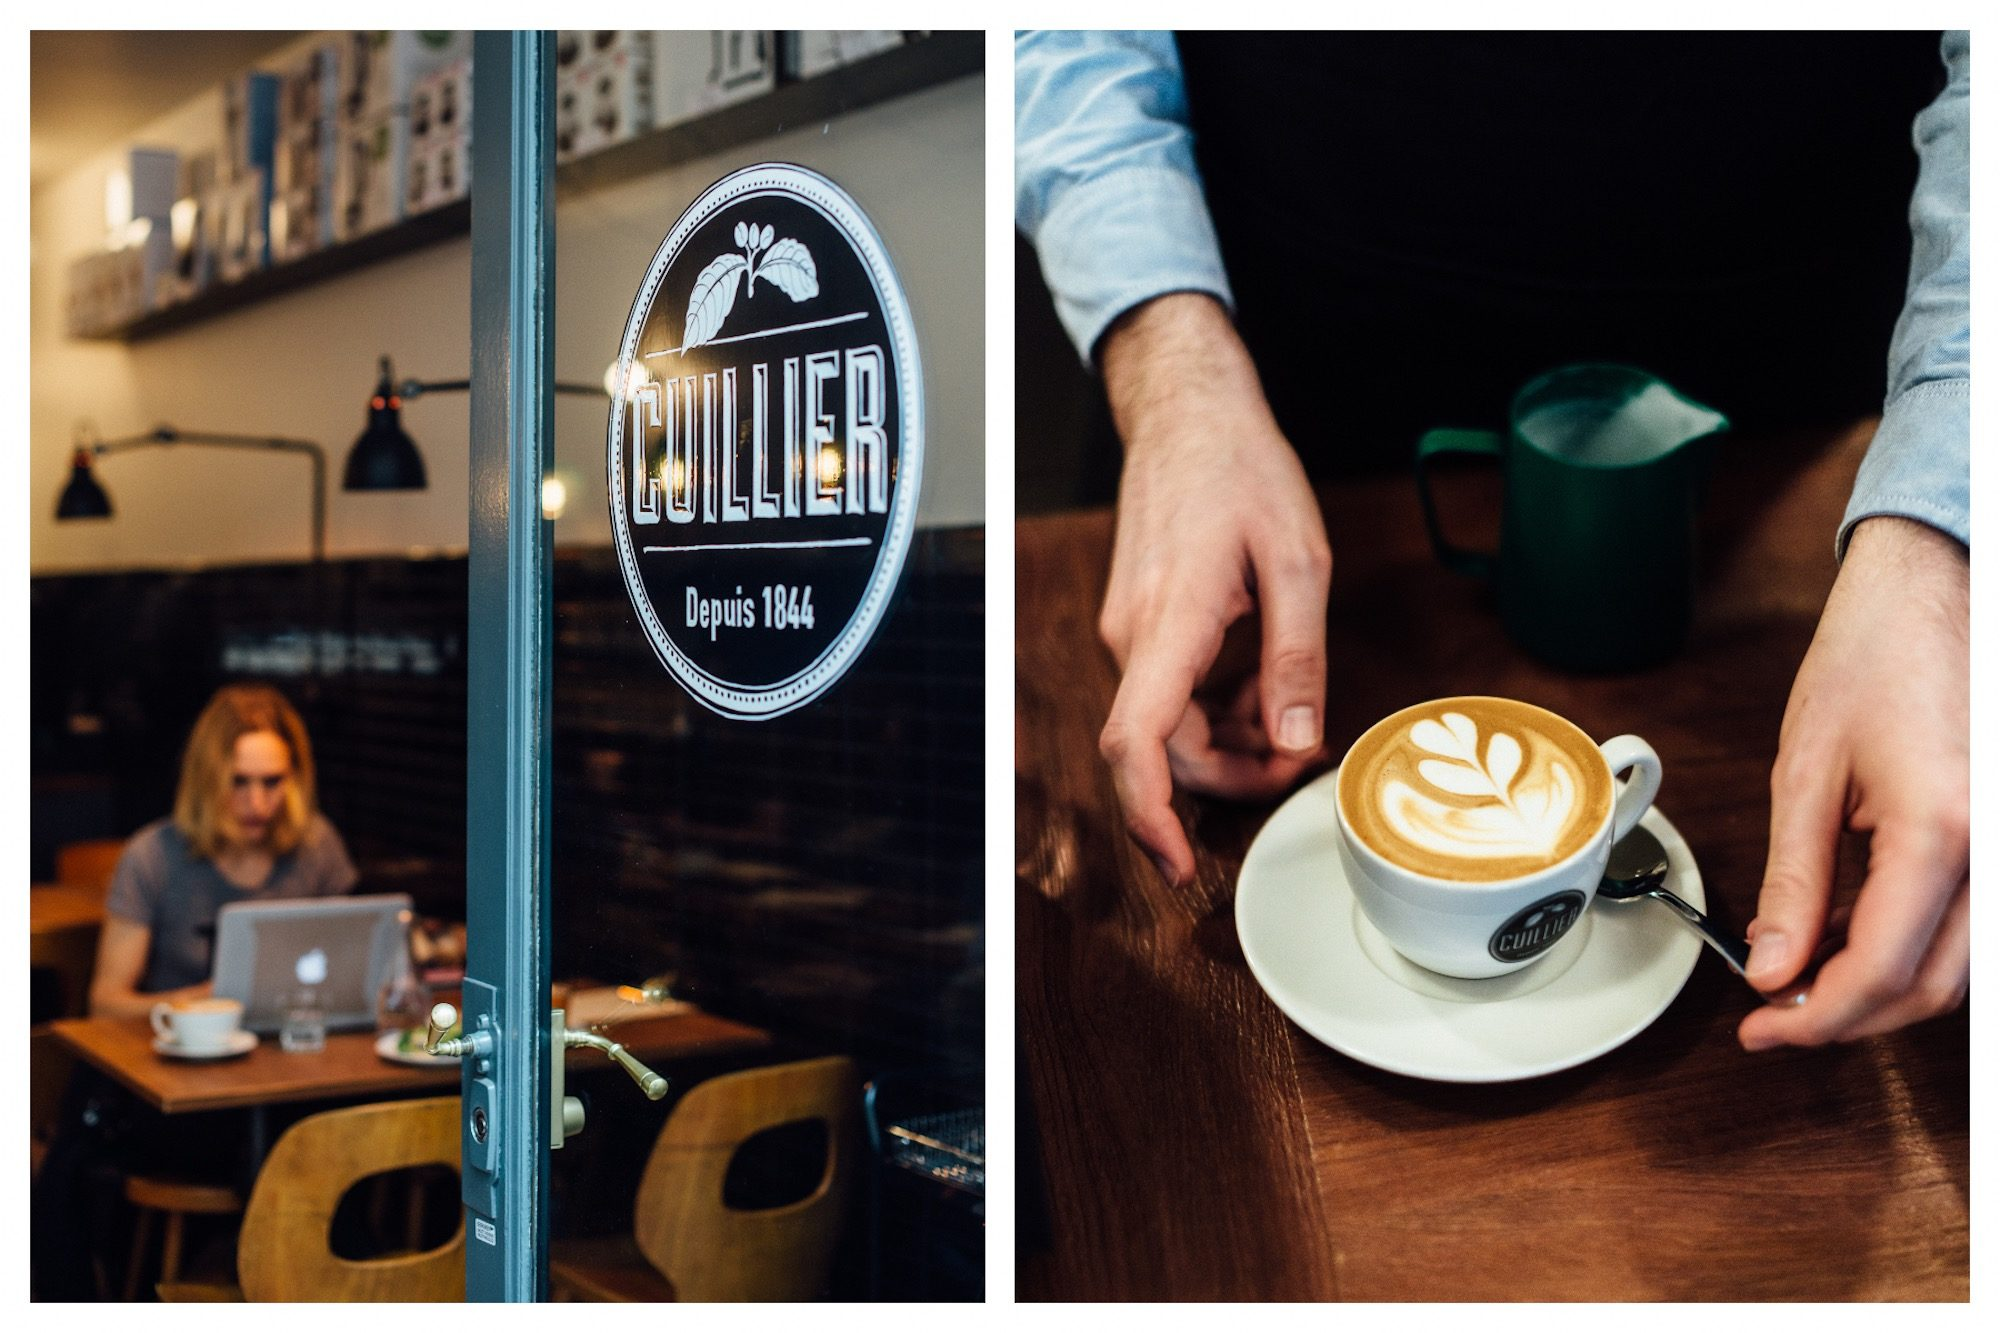 A freshly made cappuccino between the hands of the barista at Cuillier coffee shop in St Germain des Près Paris